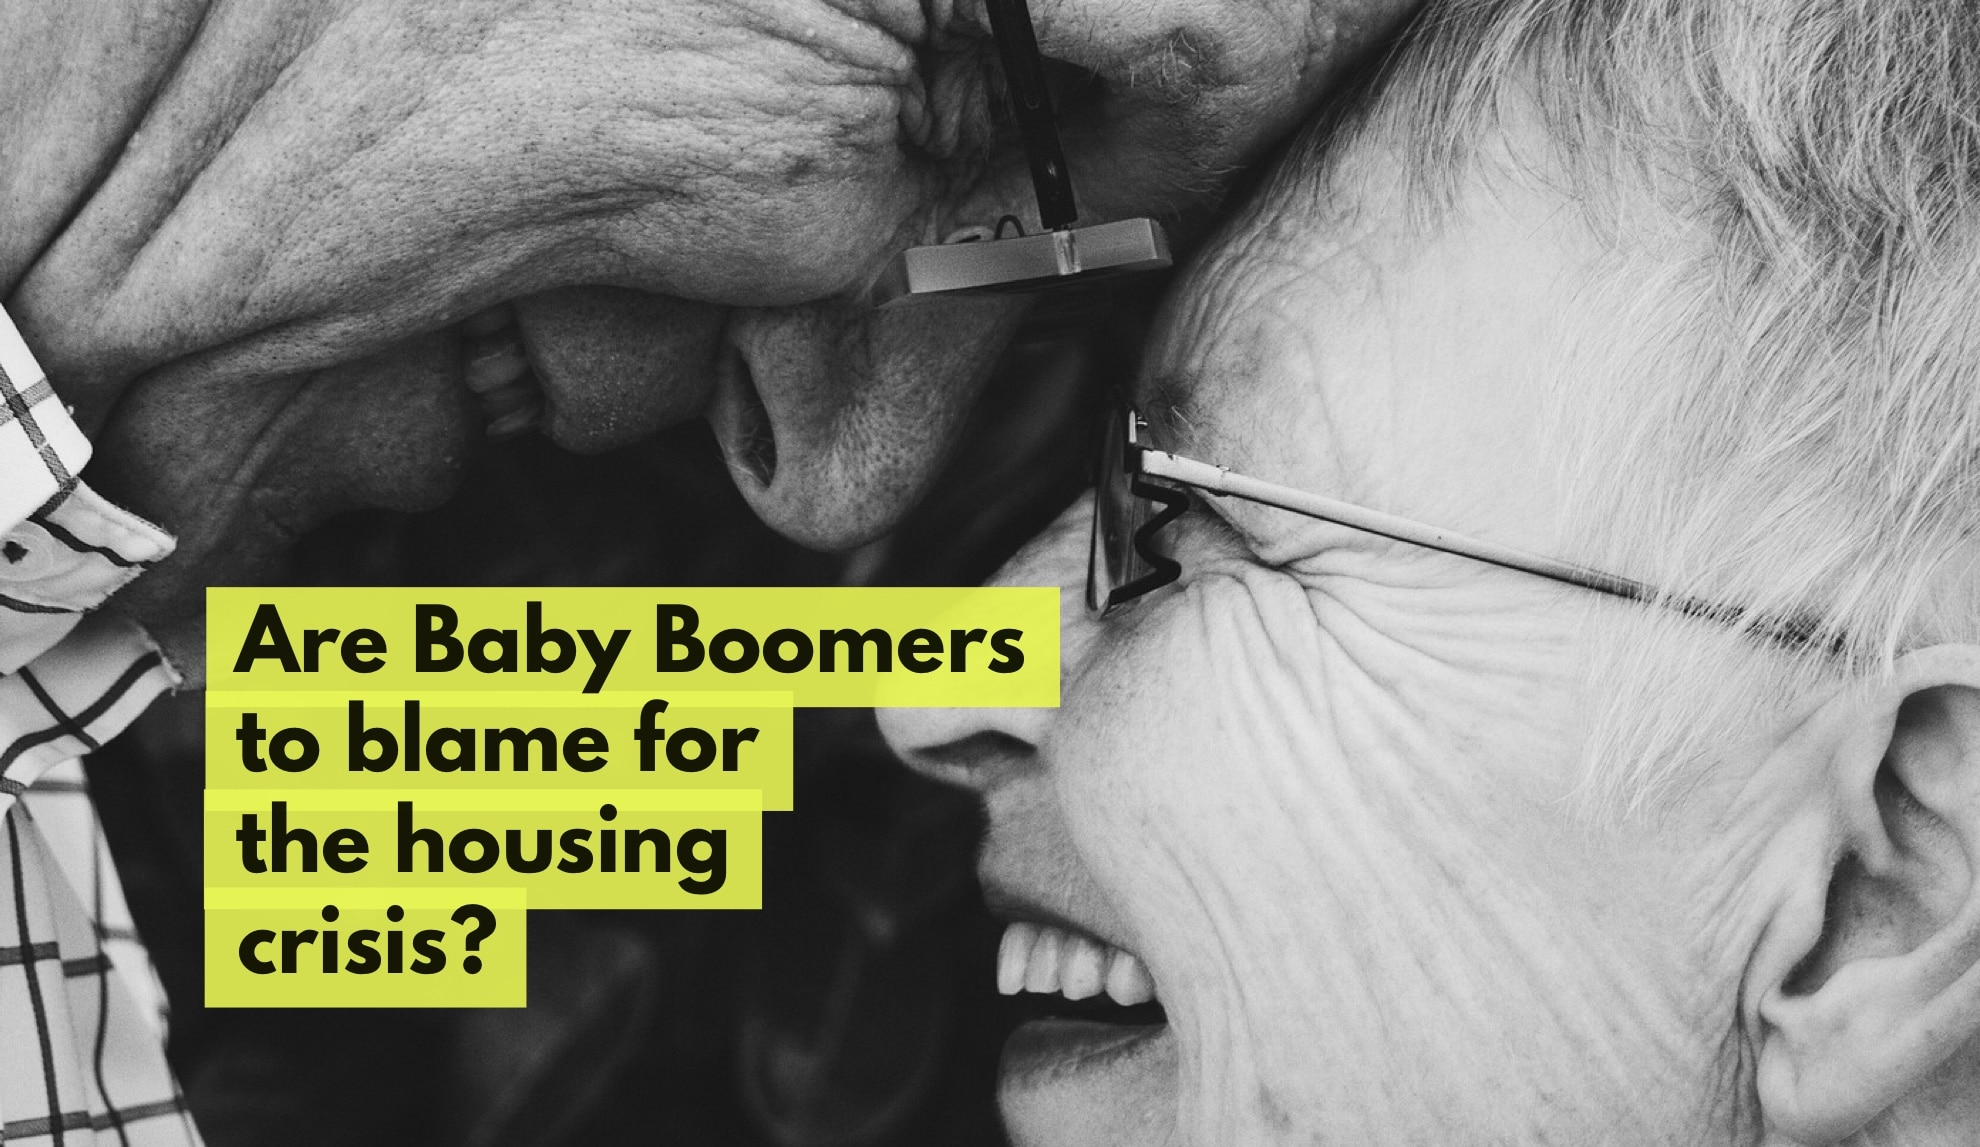 Youngsters unable to buy their first home in Canterbury – Are the Baby Boomers and Landlords to Blame?